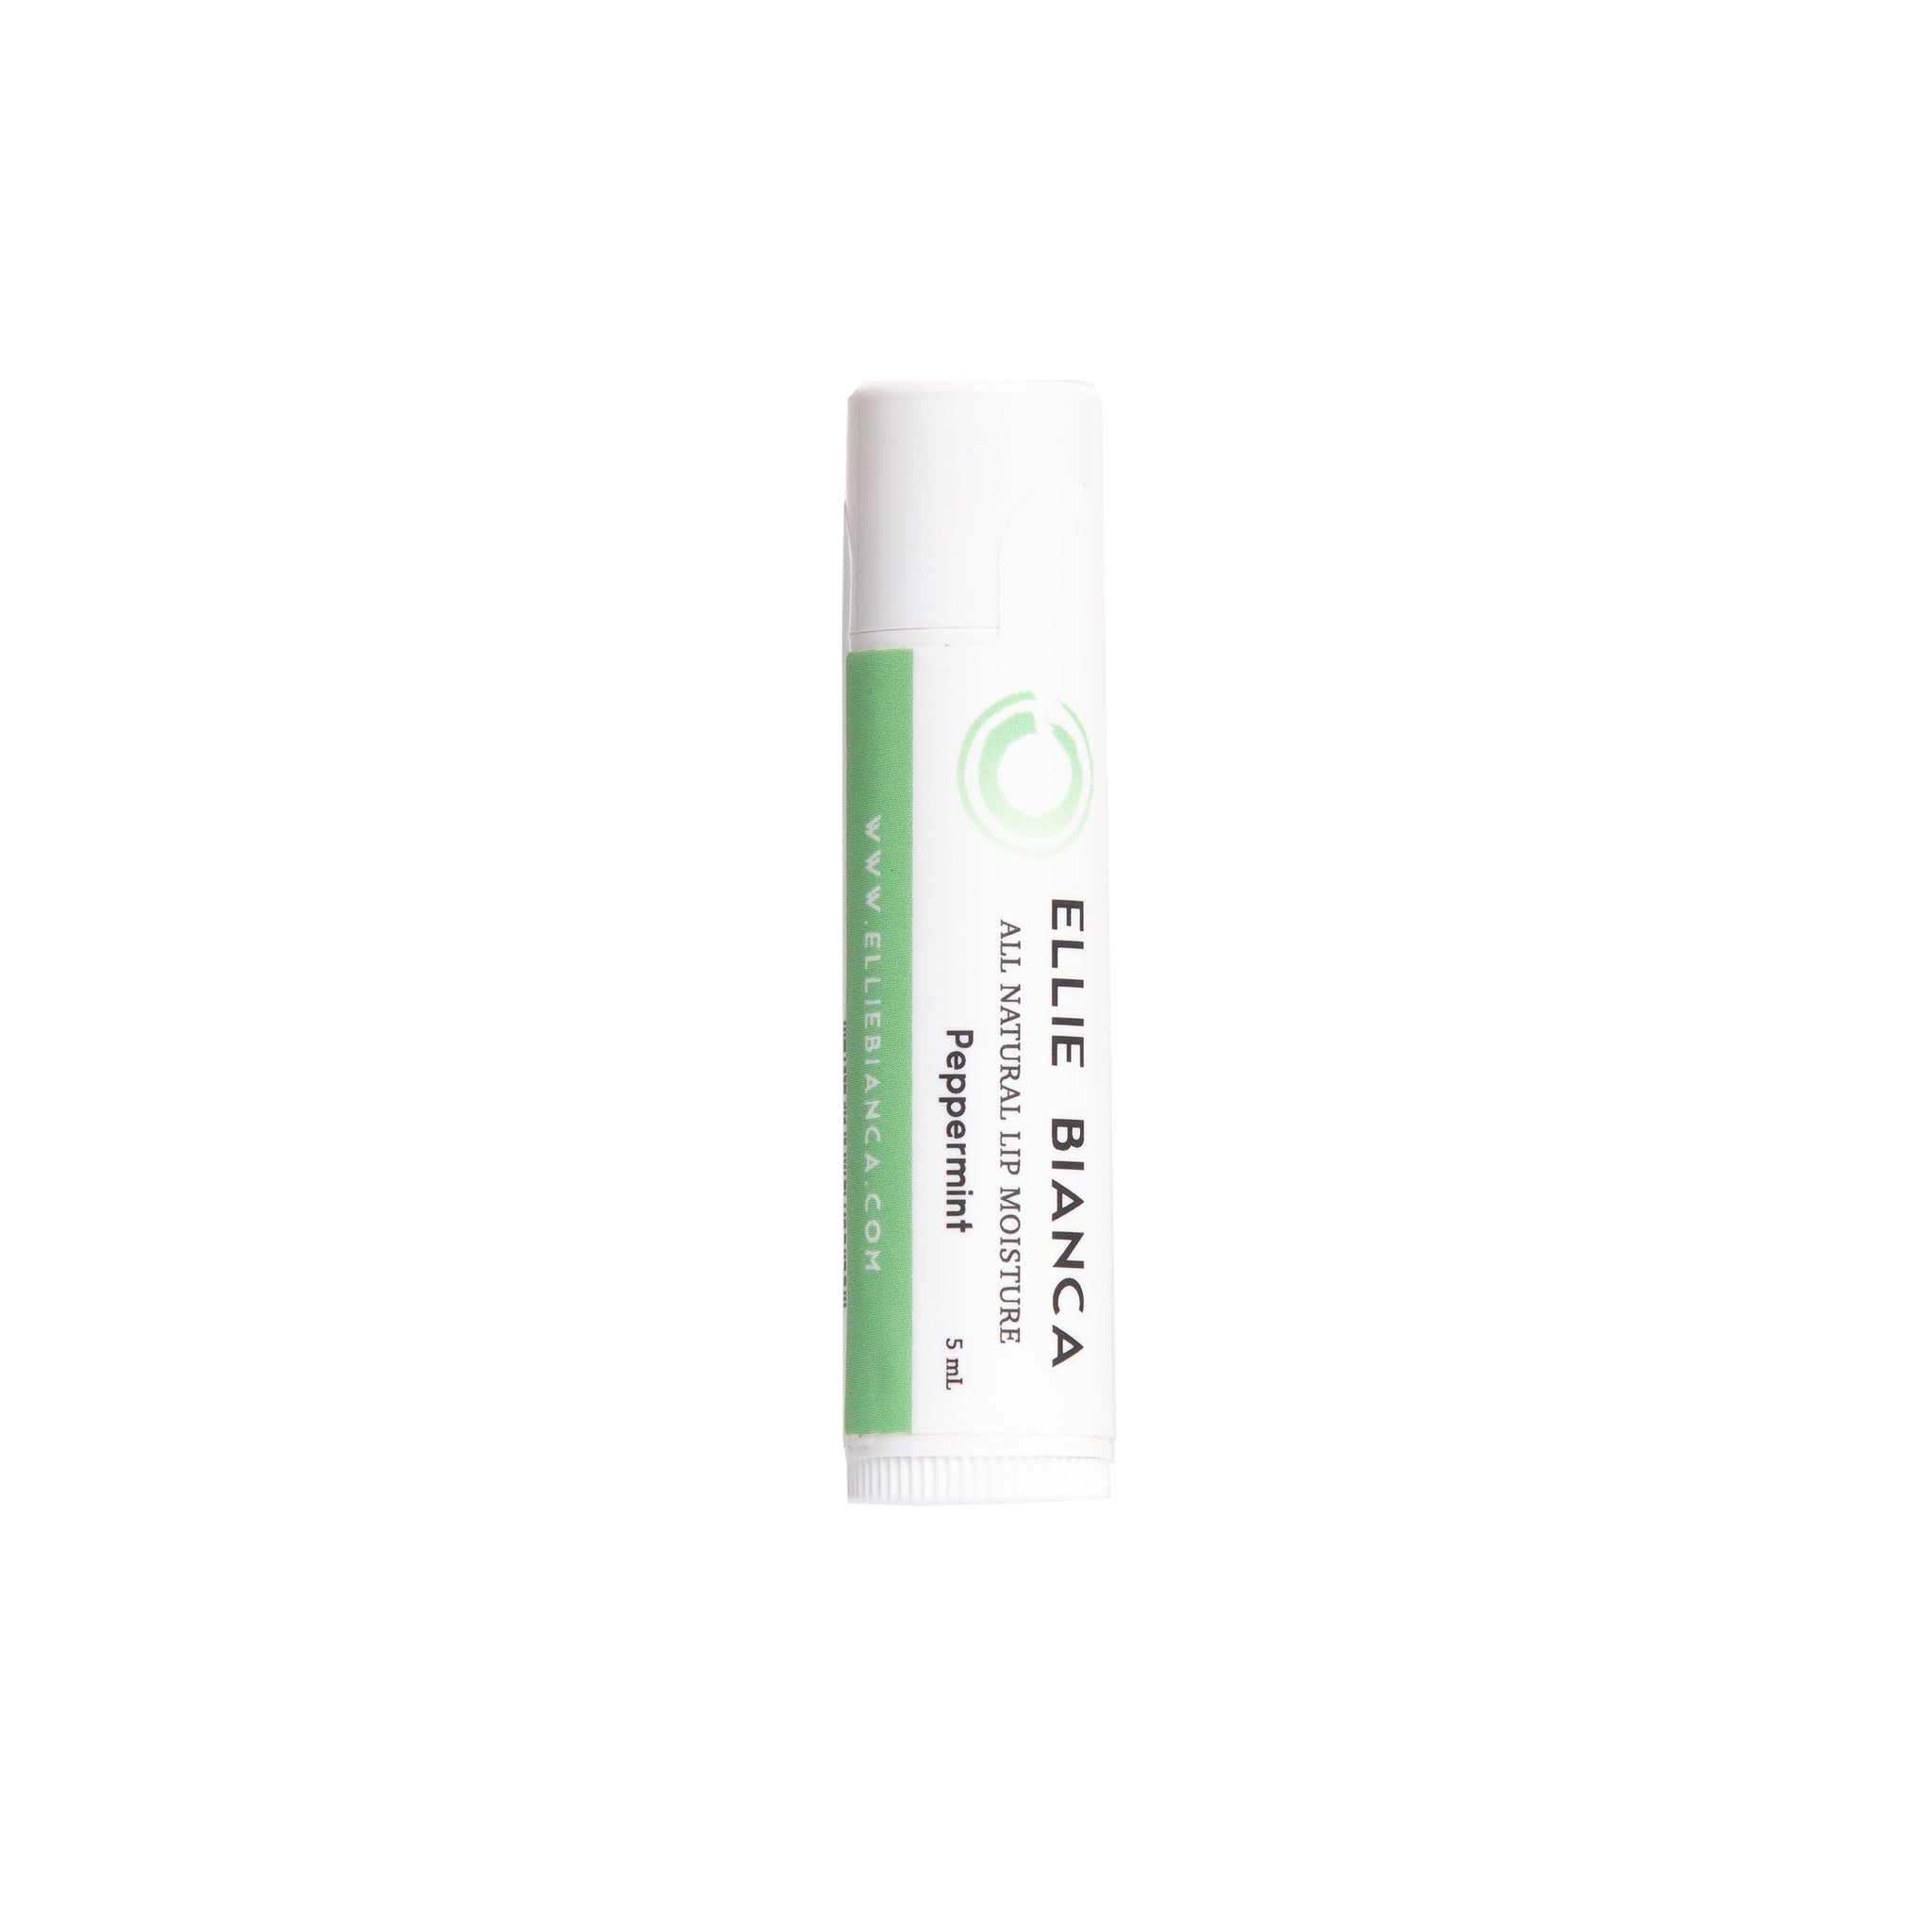 Peppermint - Lips Naturalle - Tube